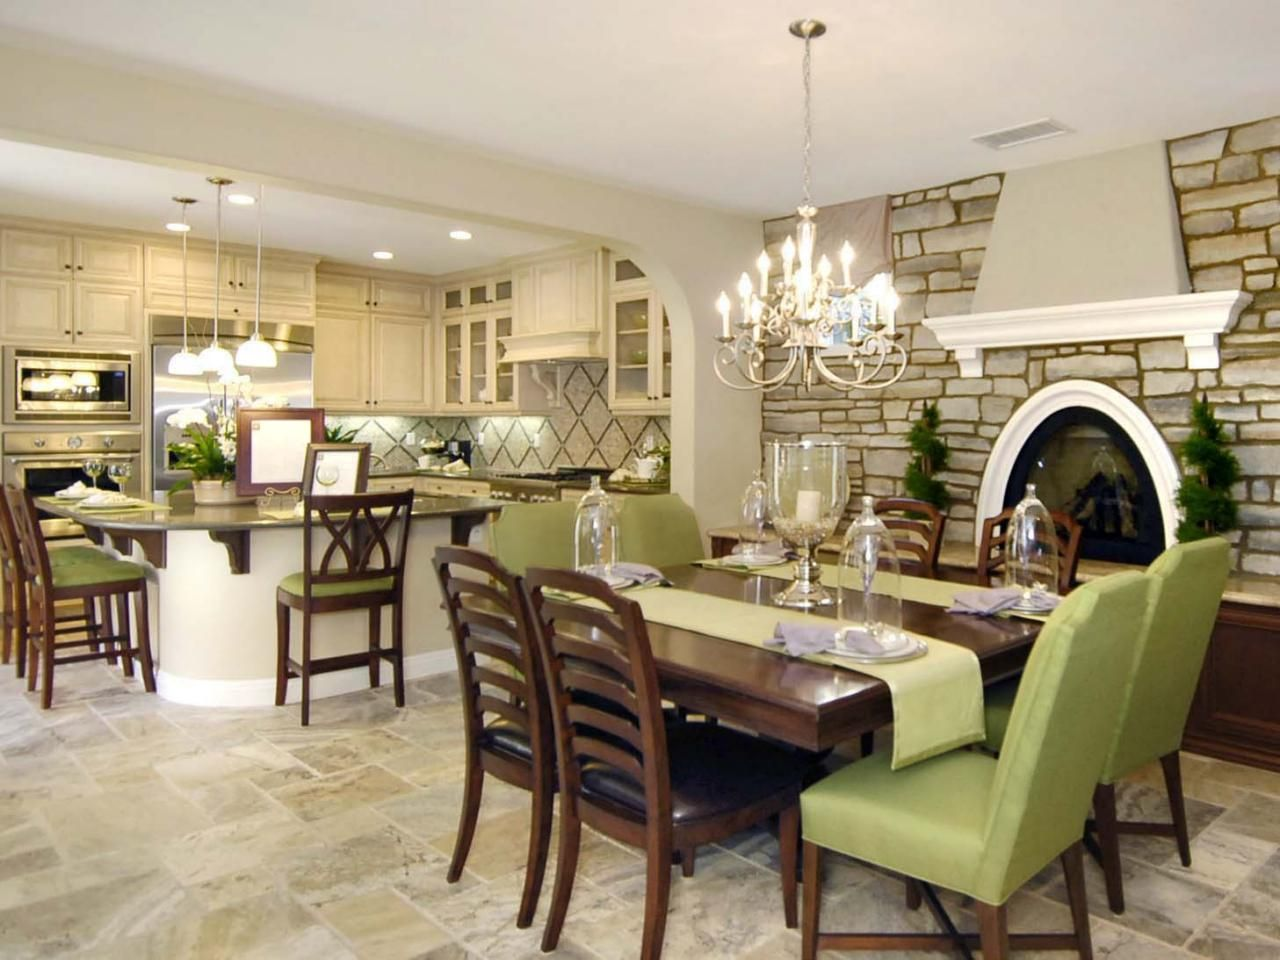 Lighting Tips For Every Room  Hgtv Stone Walls And Remodeling Ideas Interesting Hgtv Dining Rooms Design Inspiration